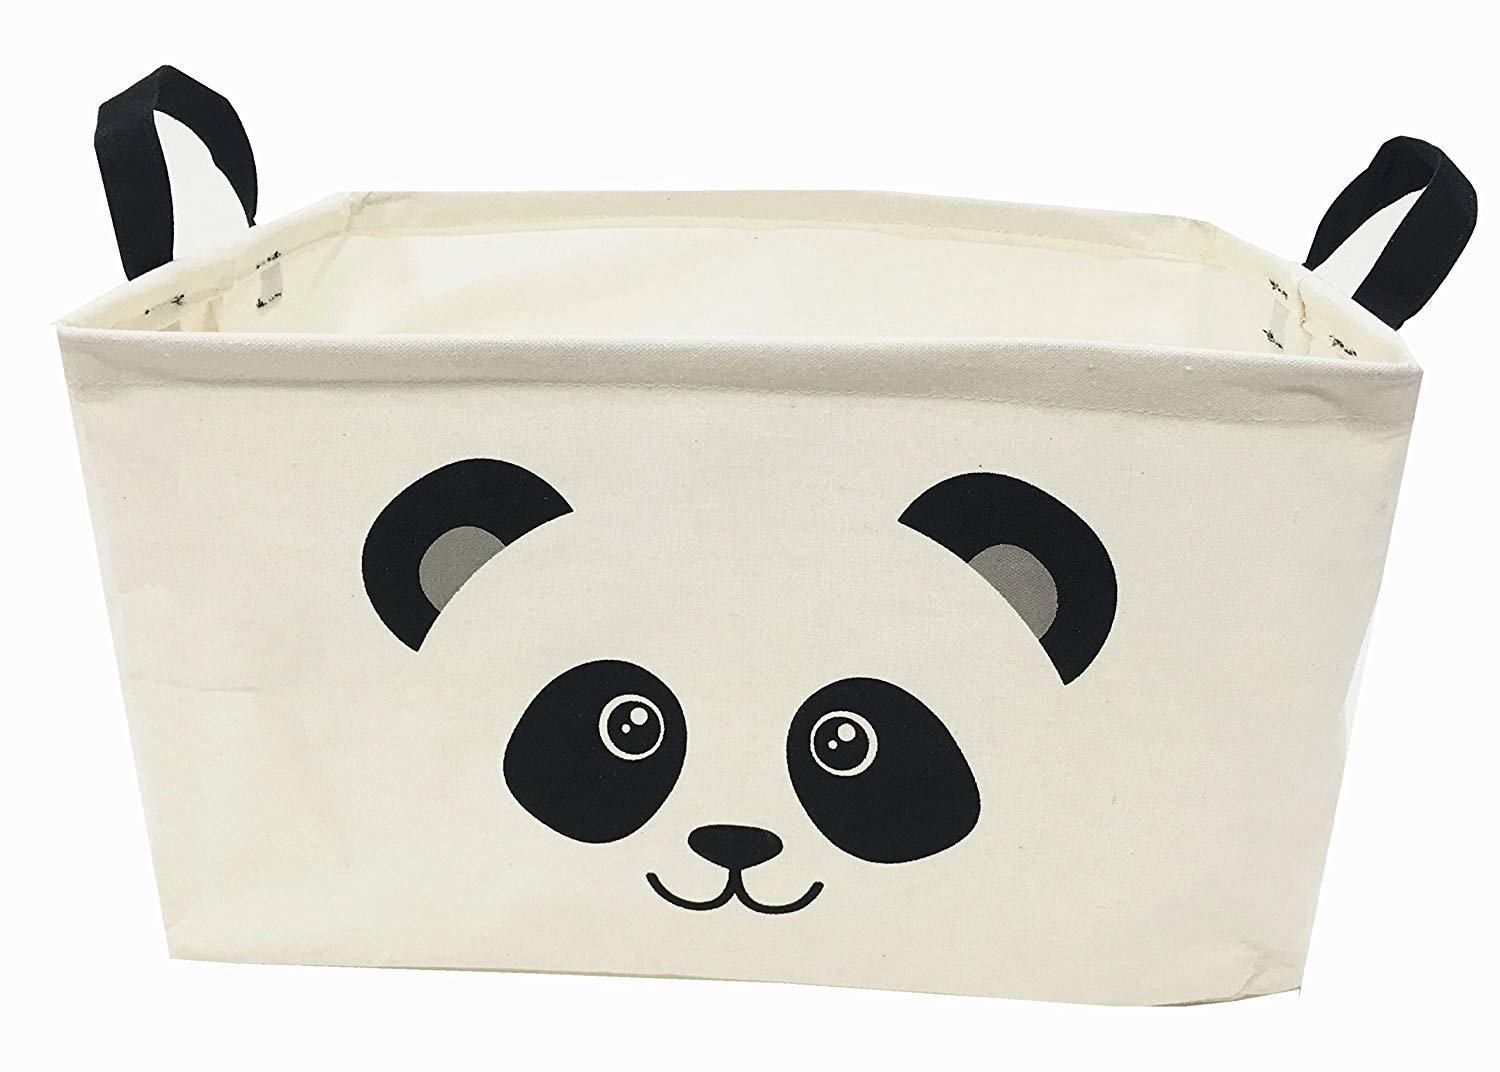 "JoyMall Foldable Storage Basket,Collapsible Storage Bins Works As Baby Storage, Toy Storage (White(Panda)) - Size: Medium - 15"" L x 10"" W x 9"" H; Color: White Cotton & Linen outside+ waterproof PE coating lining. Collapsible construction. Folds down for easy storage while not in use. - living-room-decor, living-room, baskets-storage - 71Pldp0Uv8L -"